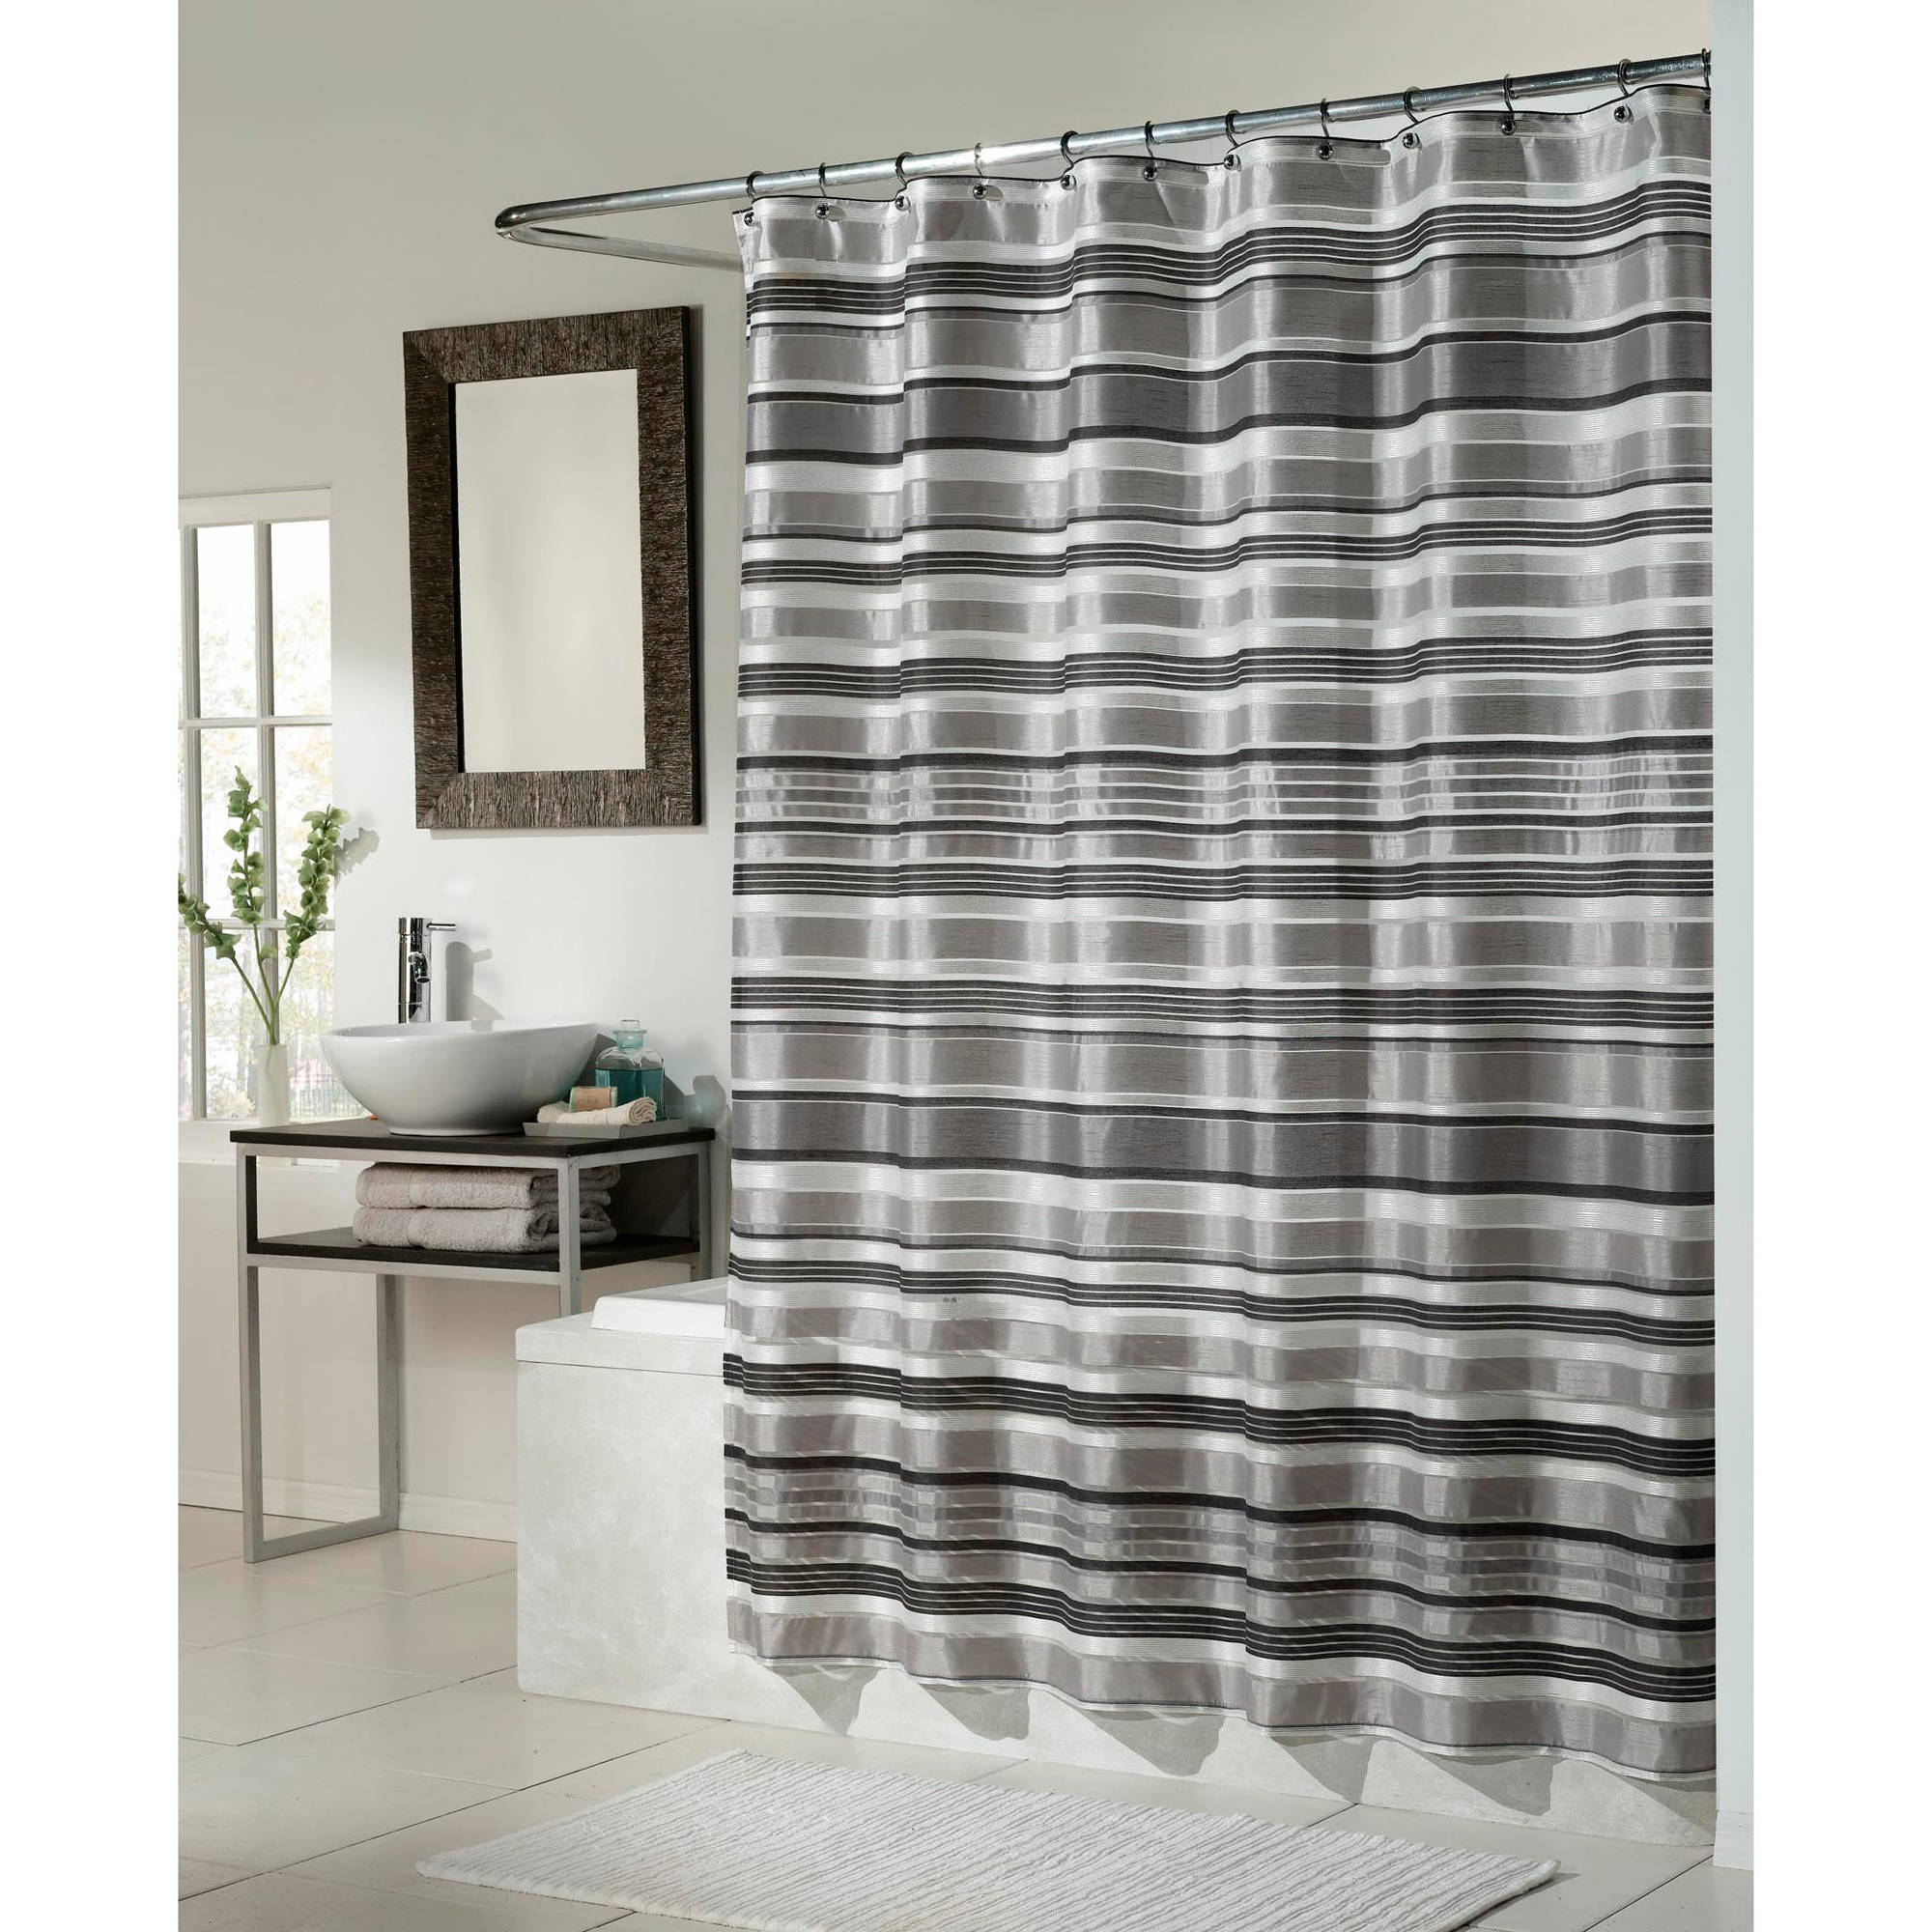 Clocks Black And White Shower Curtains Shower Curtain Liner throughout measurements 2000 X 2000